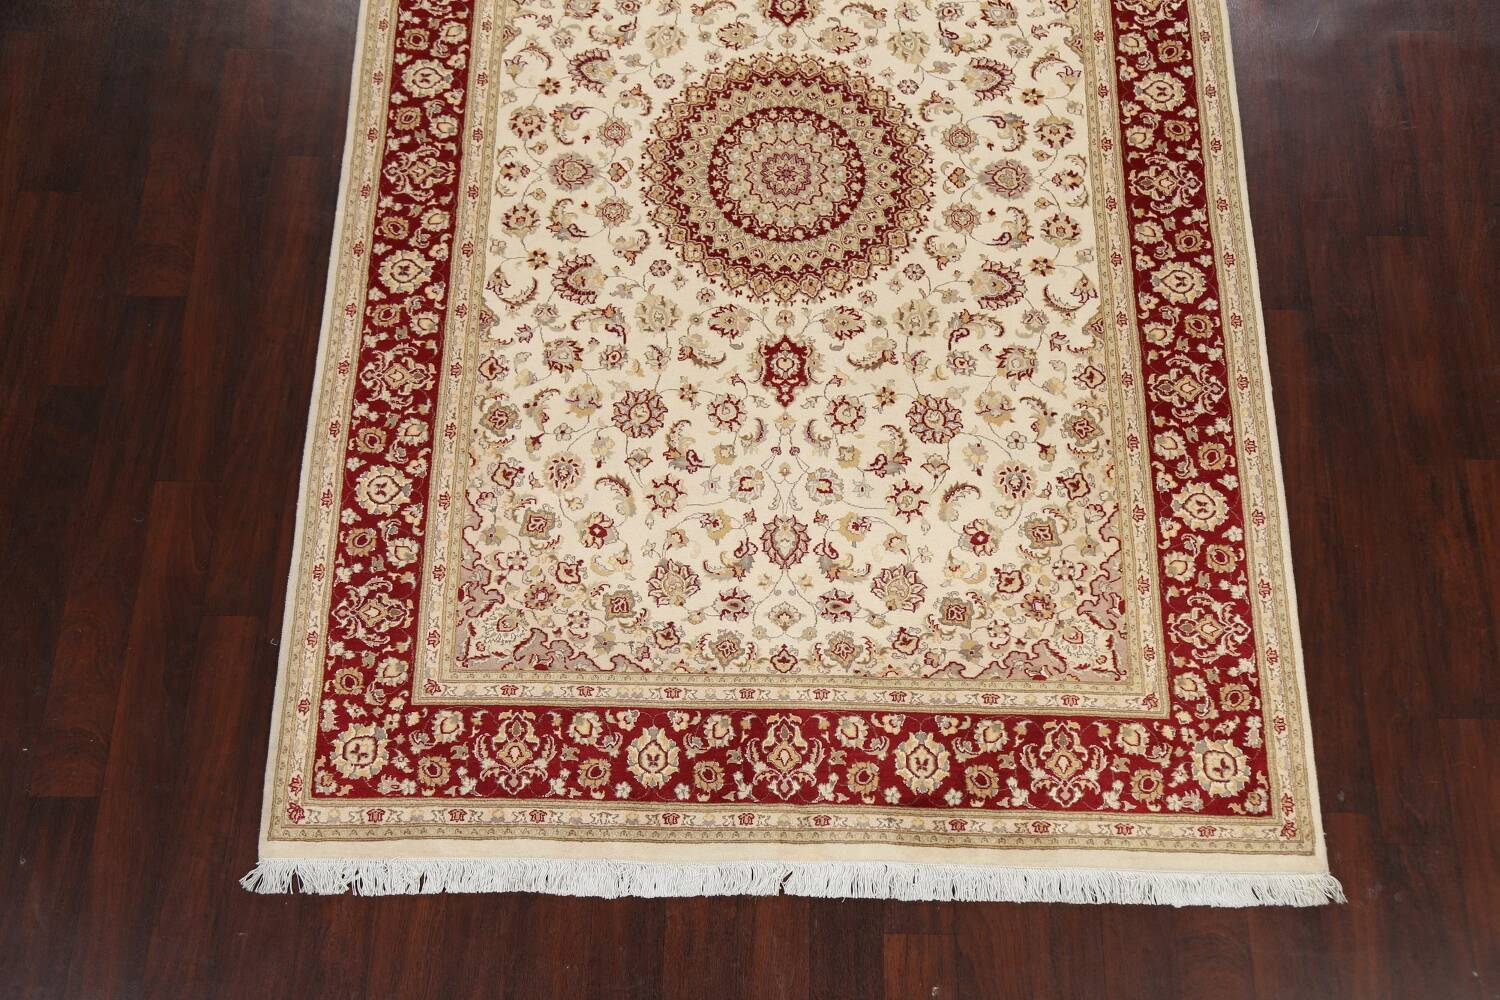 100% Vegetable Dye Floral Tabriz Oriental Area Rug 6x9 image 5